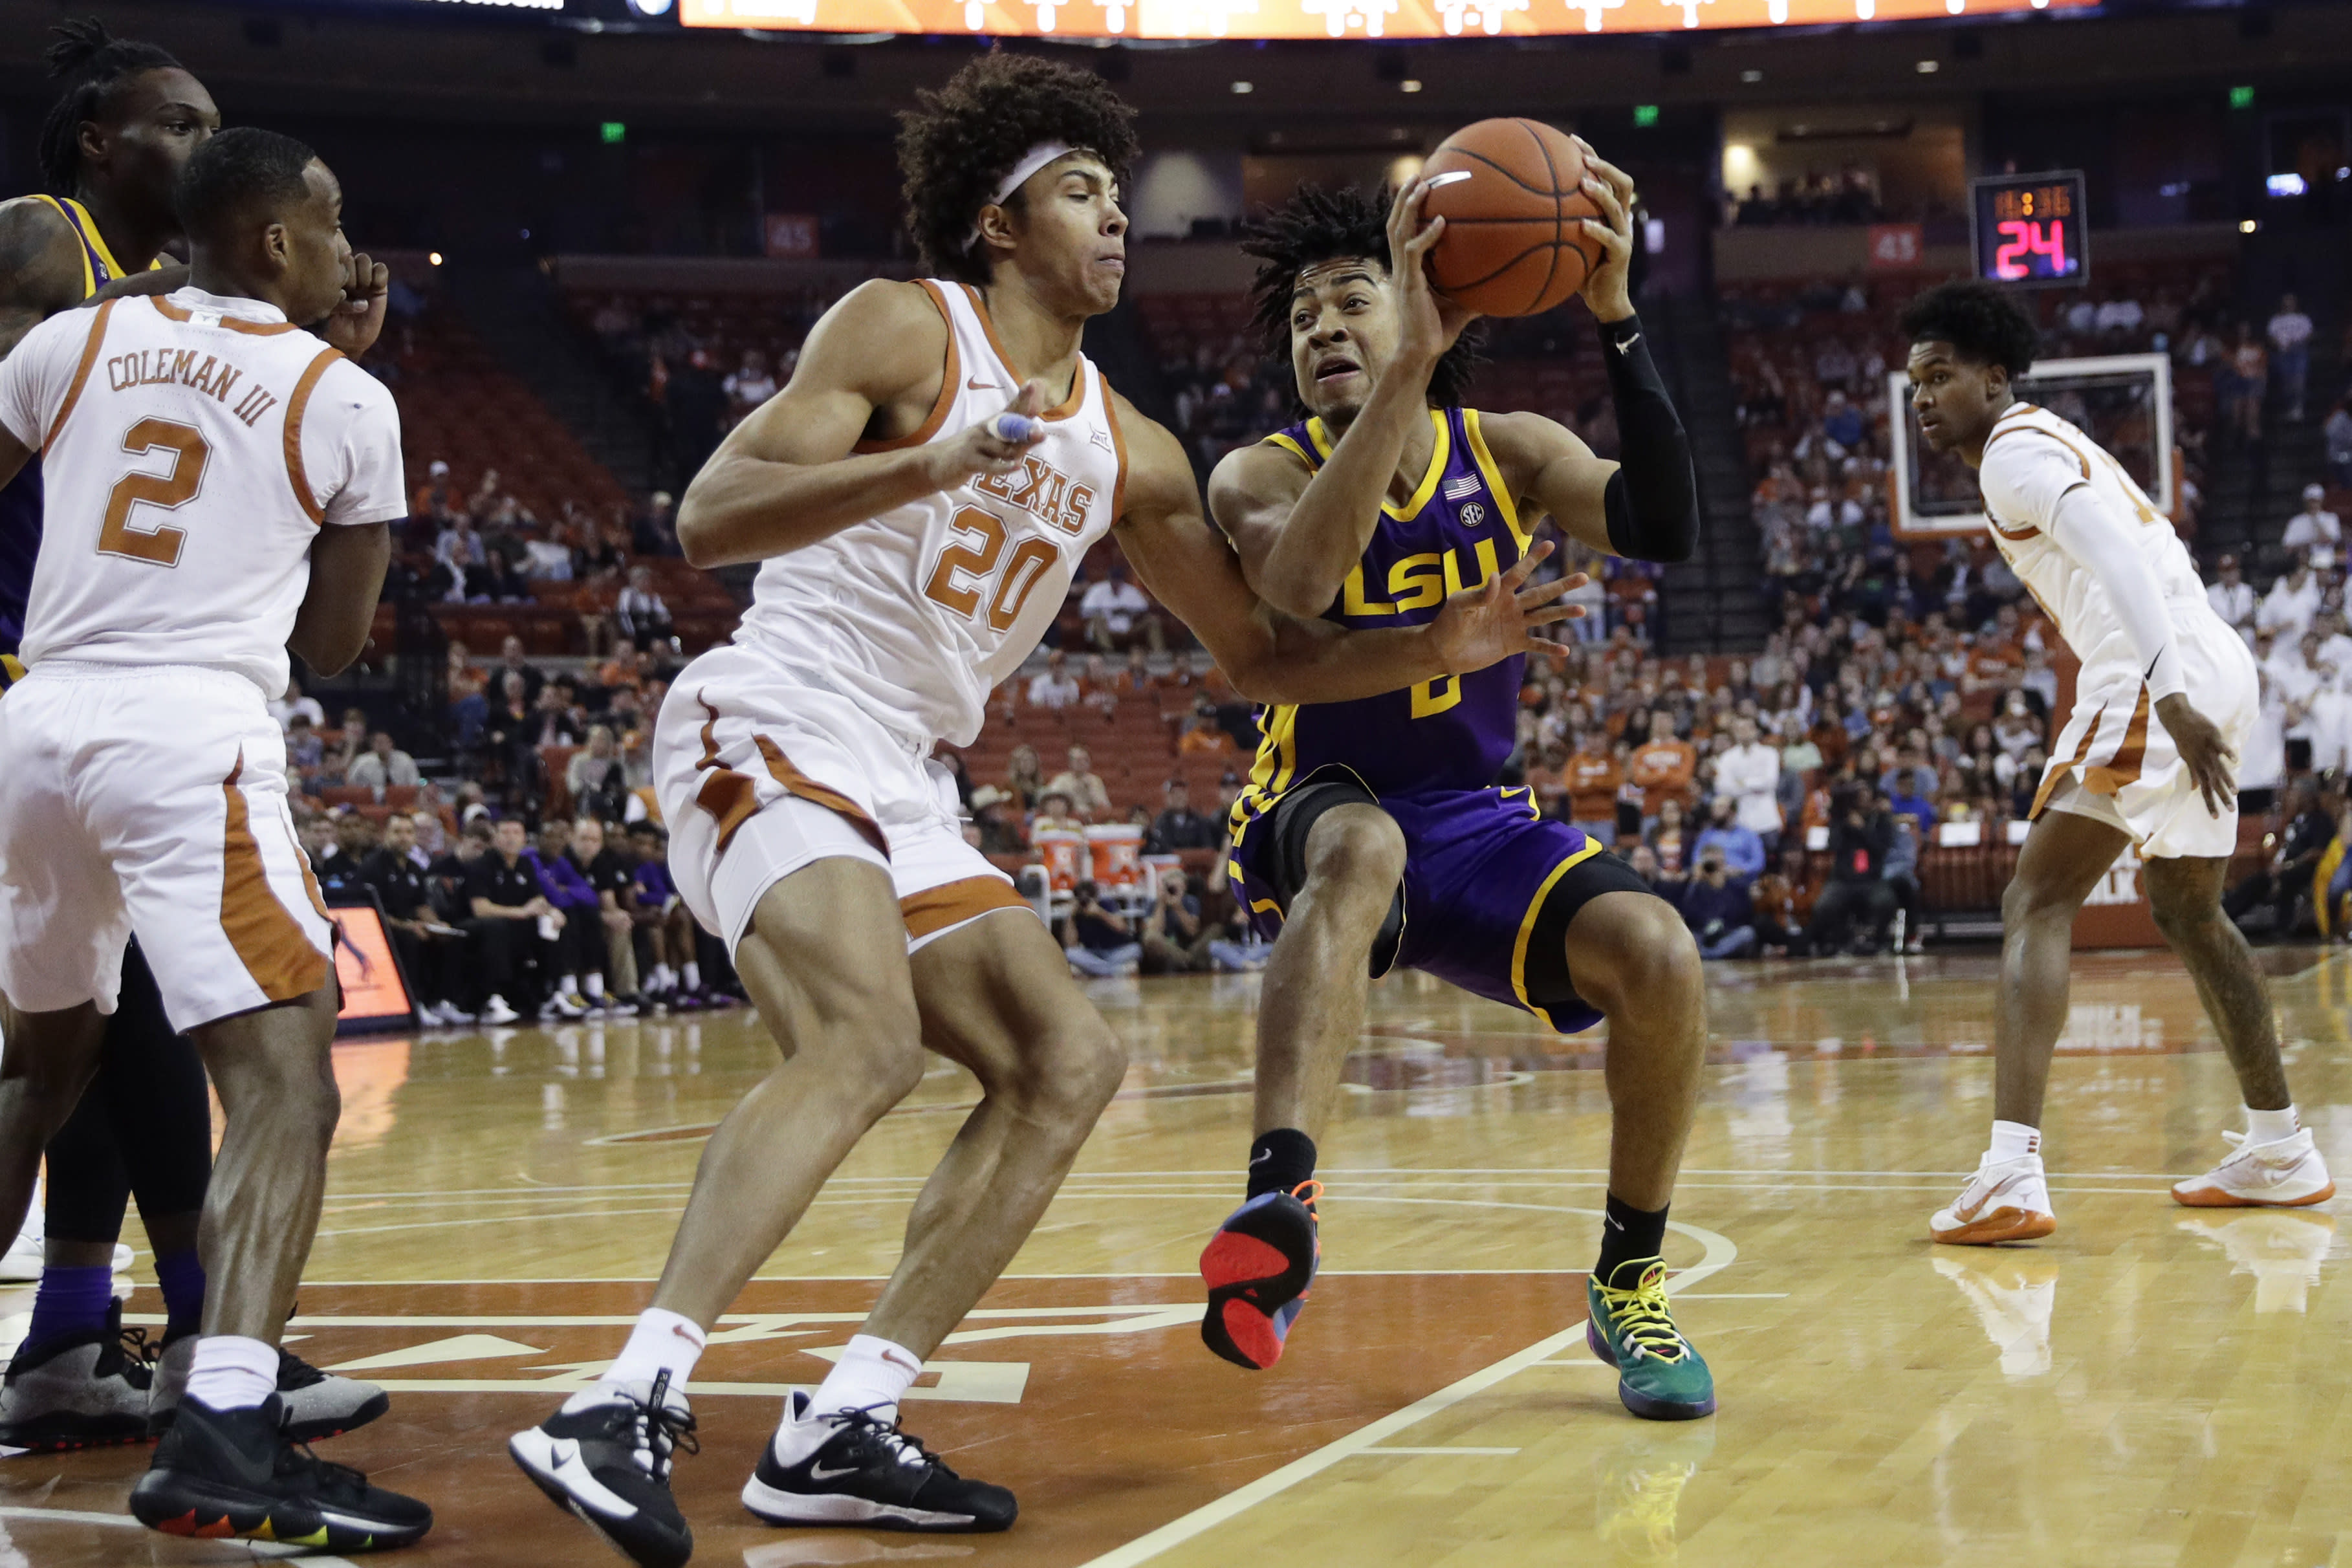 Watford scores 22 and LSU overcomes Texas rally 69-67